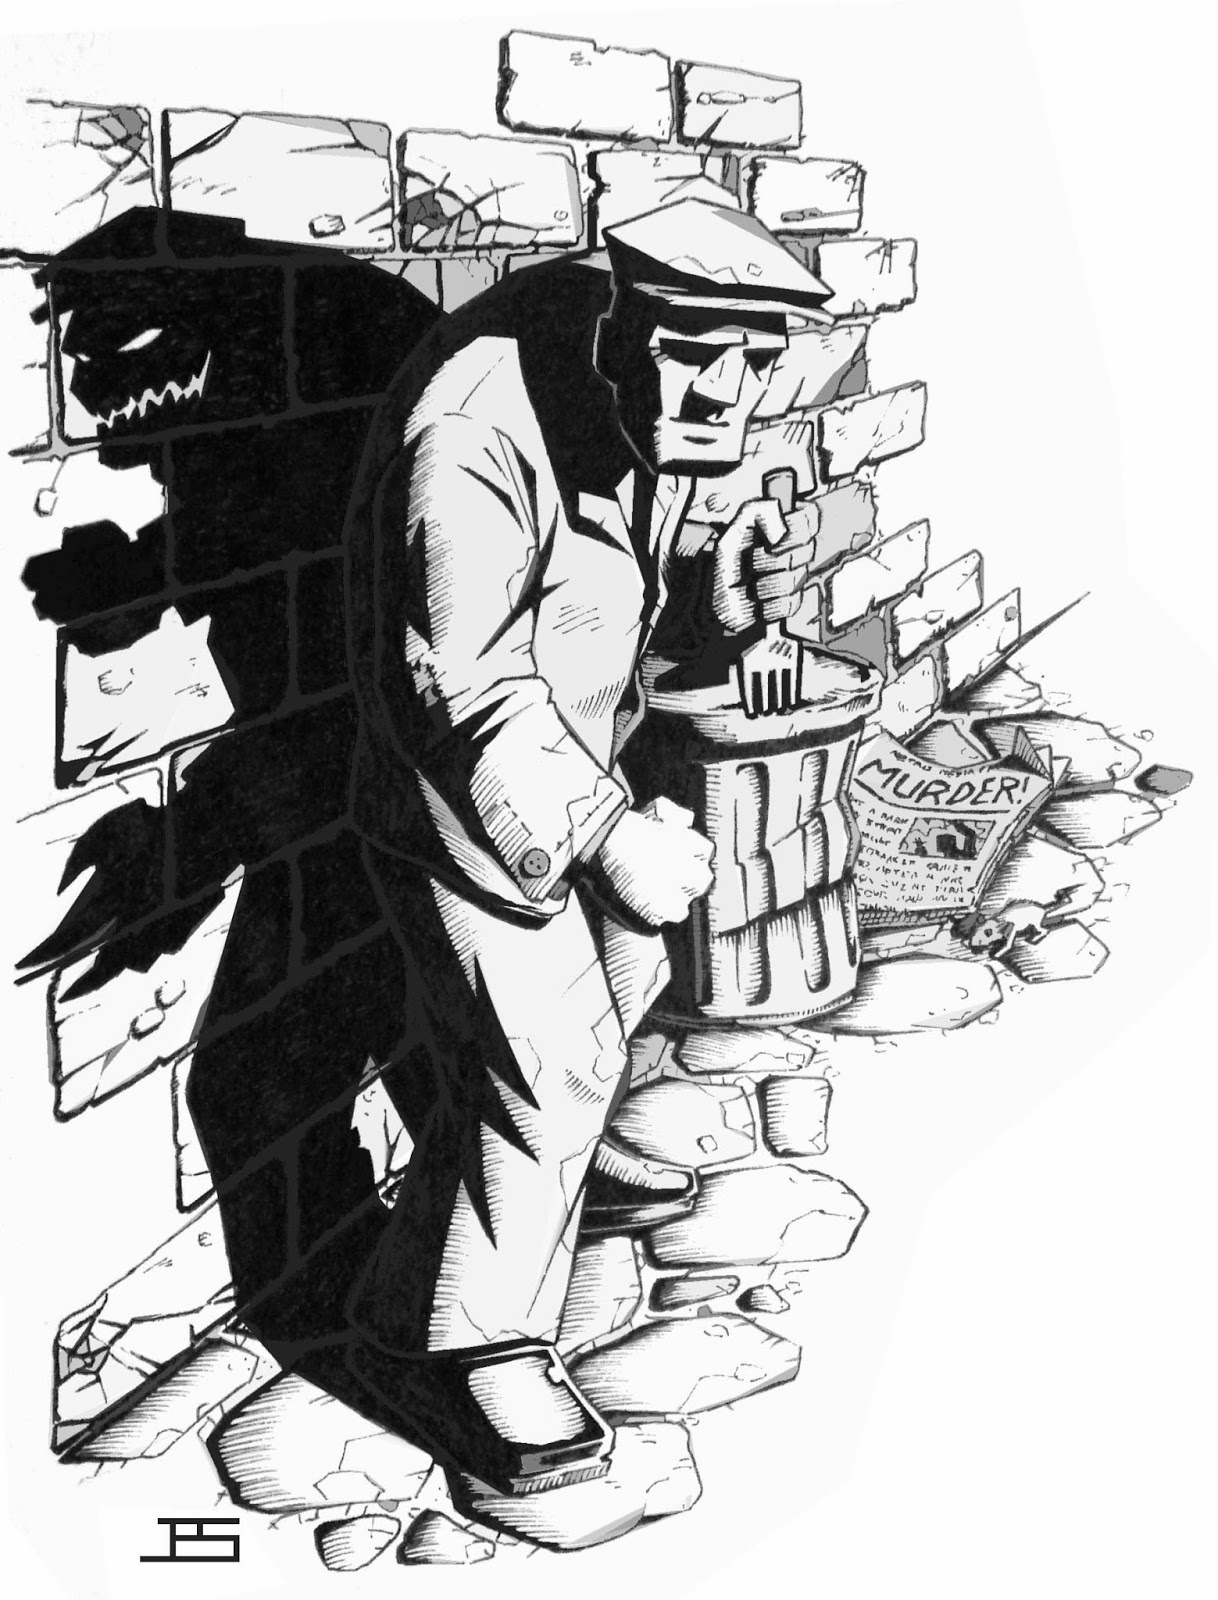 An RPG styled illustration of a pulp noir character.